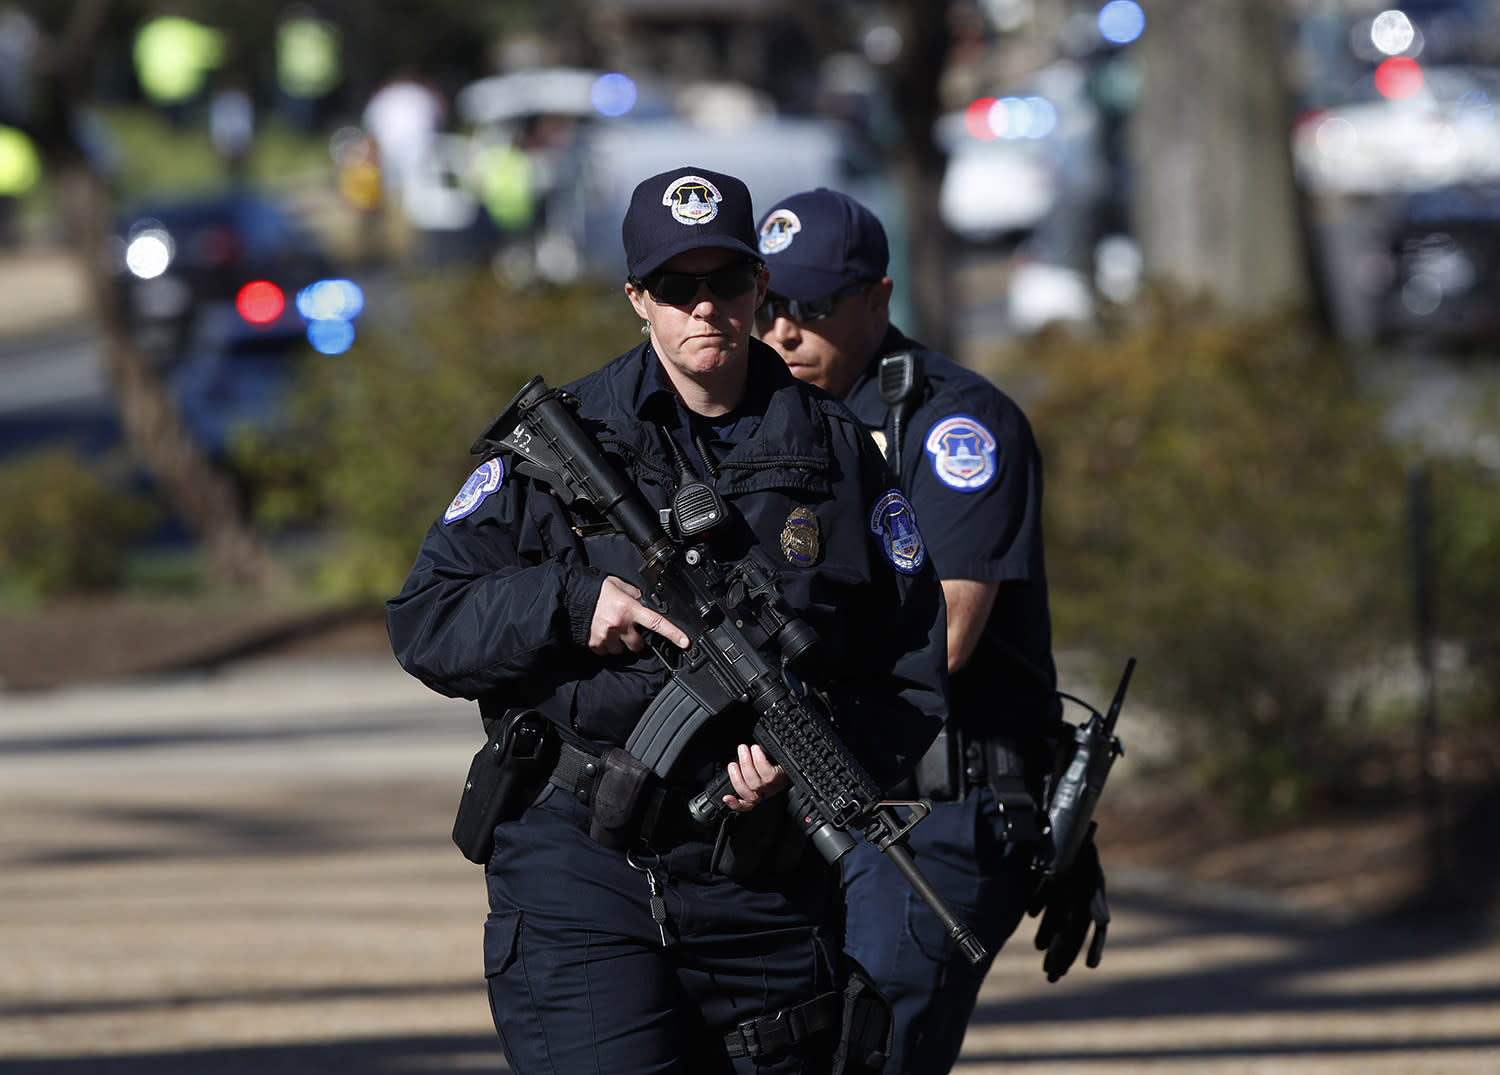 <p>Armed U.S. Capitol Police officers take position near the Botanic Gardens in Washington, Wednesday, March 29, 2017. A woman struck a U.S. Capitol Police cruiser with a vehicle near the Capitol on Wednesday morning and was taken into custody, police said. (AP Photo/Manuel Balce Ceneta) </p>